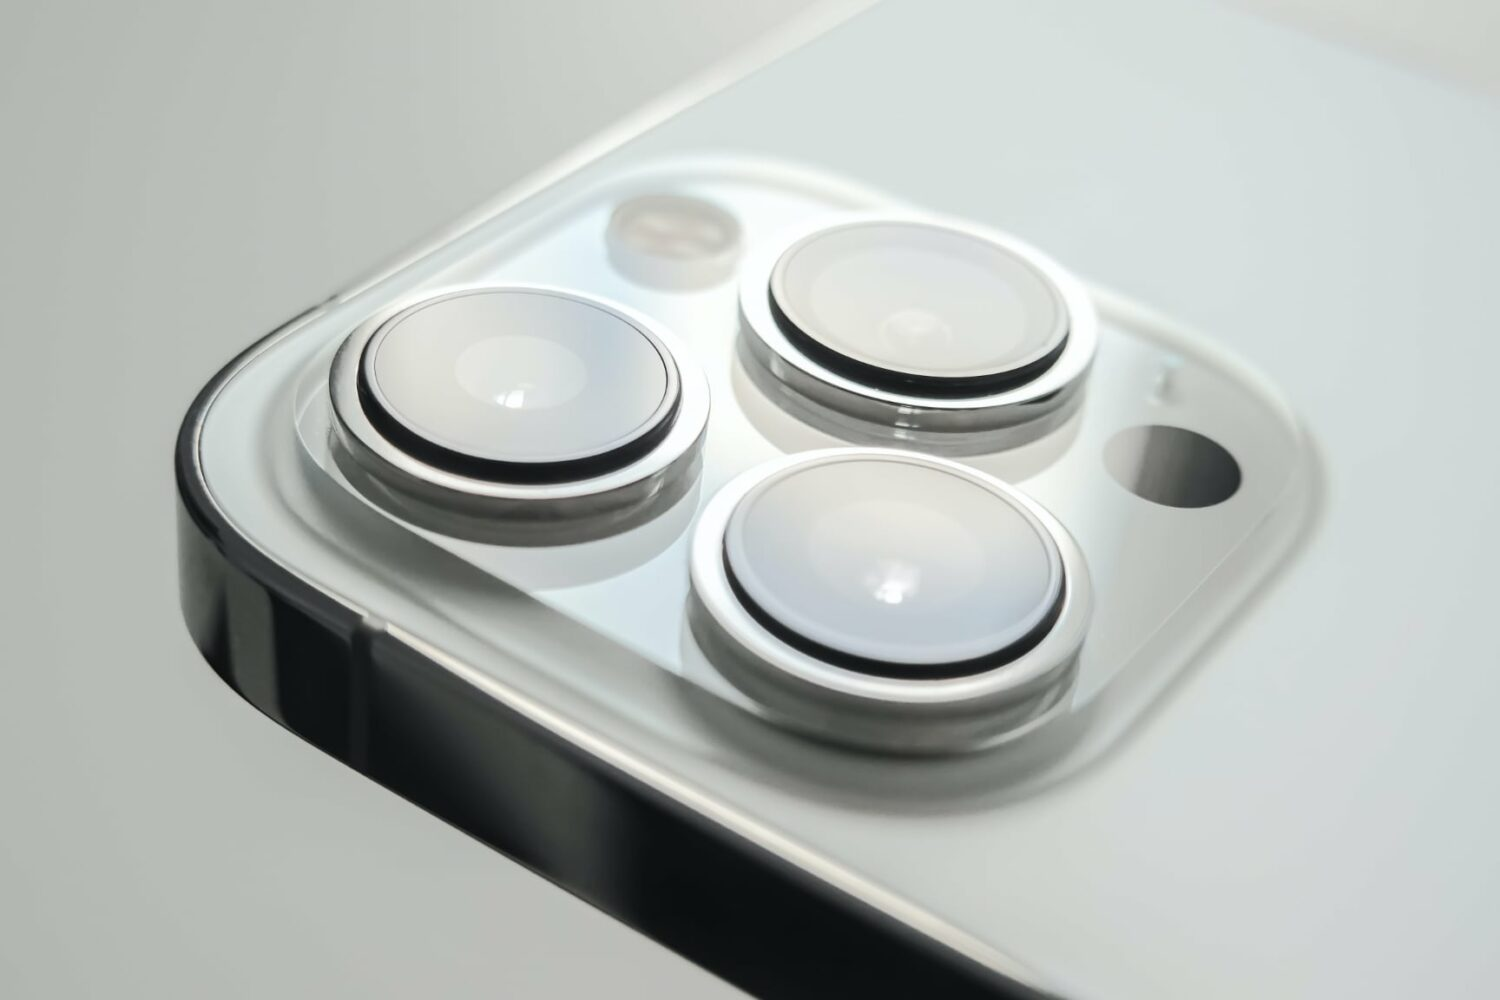 Photo showing a closeup of the rear cameras on Apple iPhone 13 Pro Max